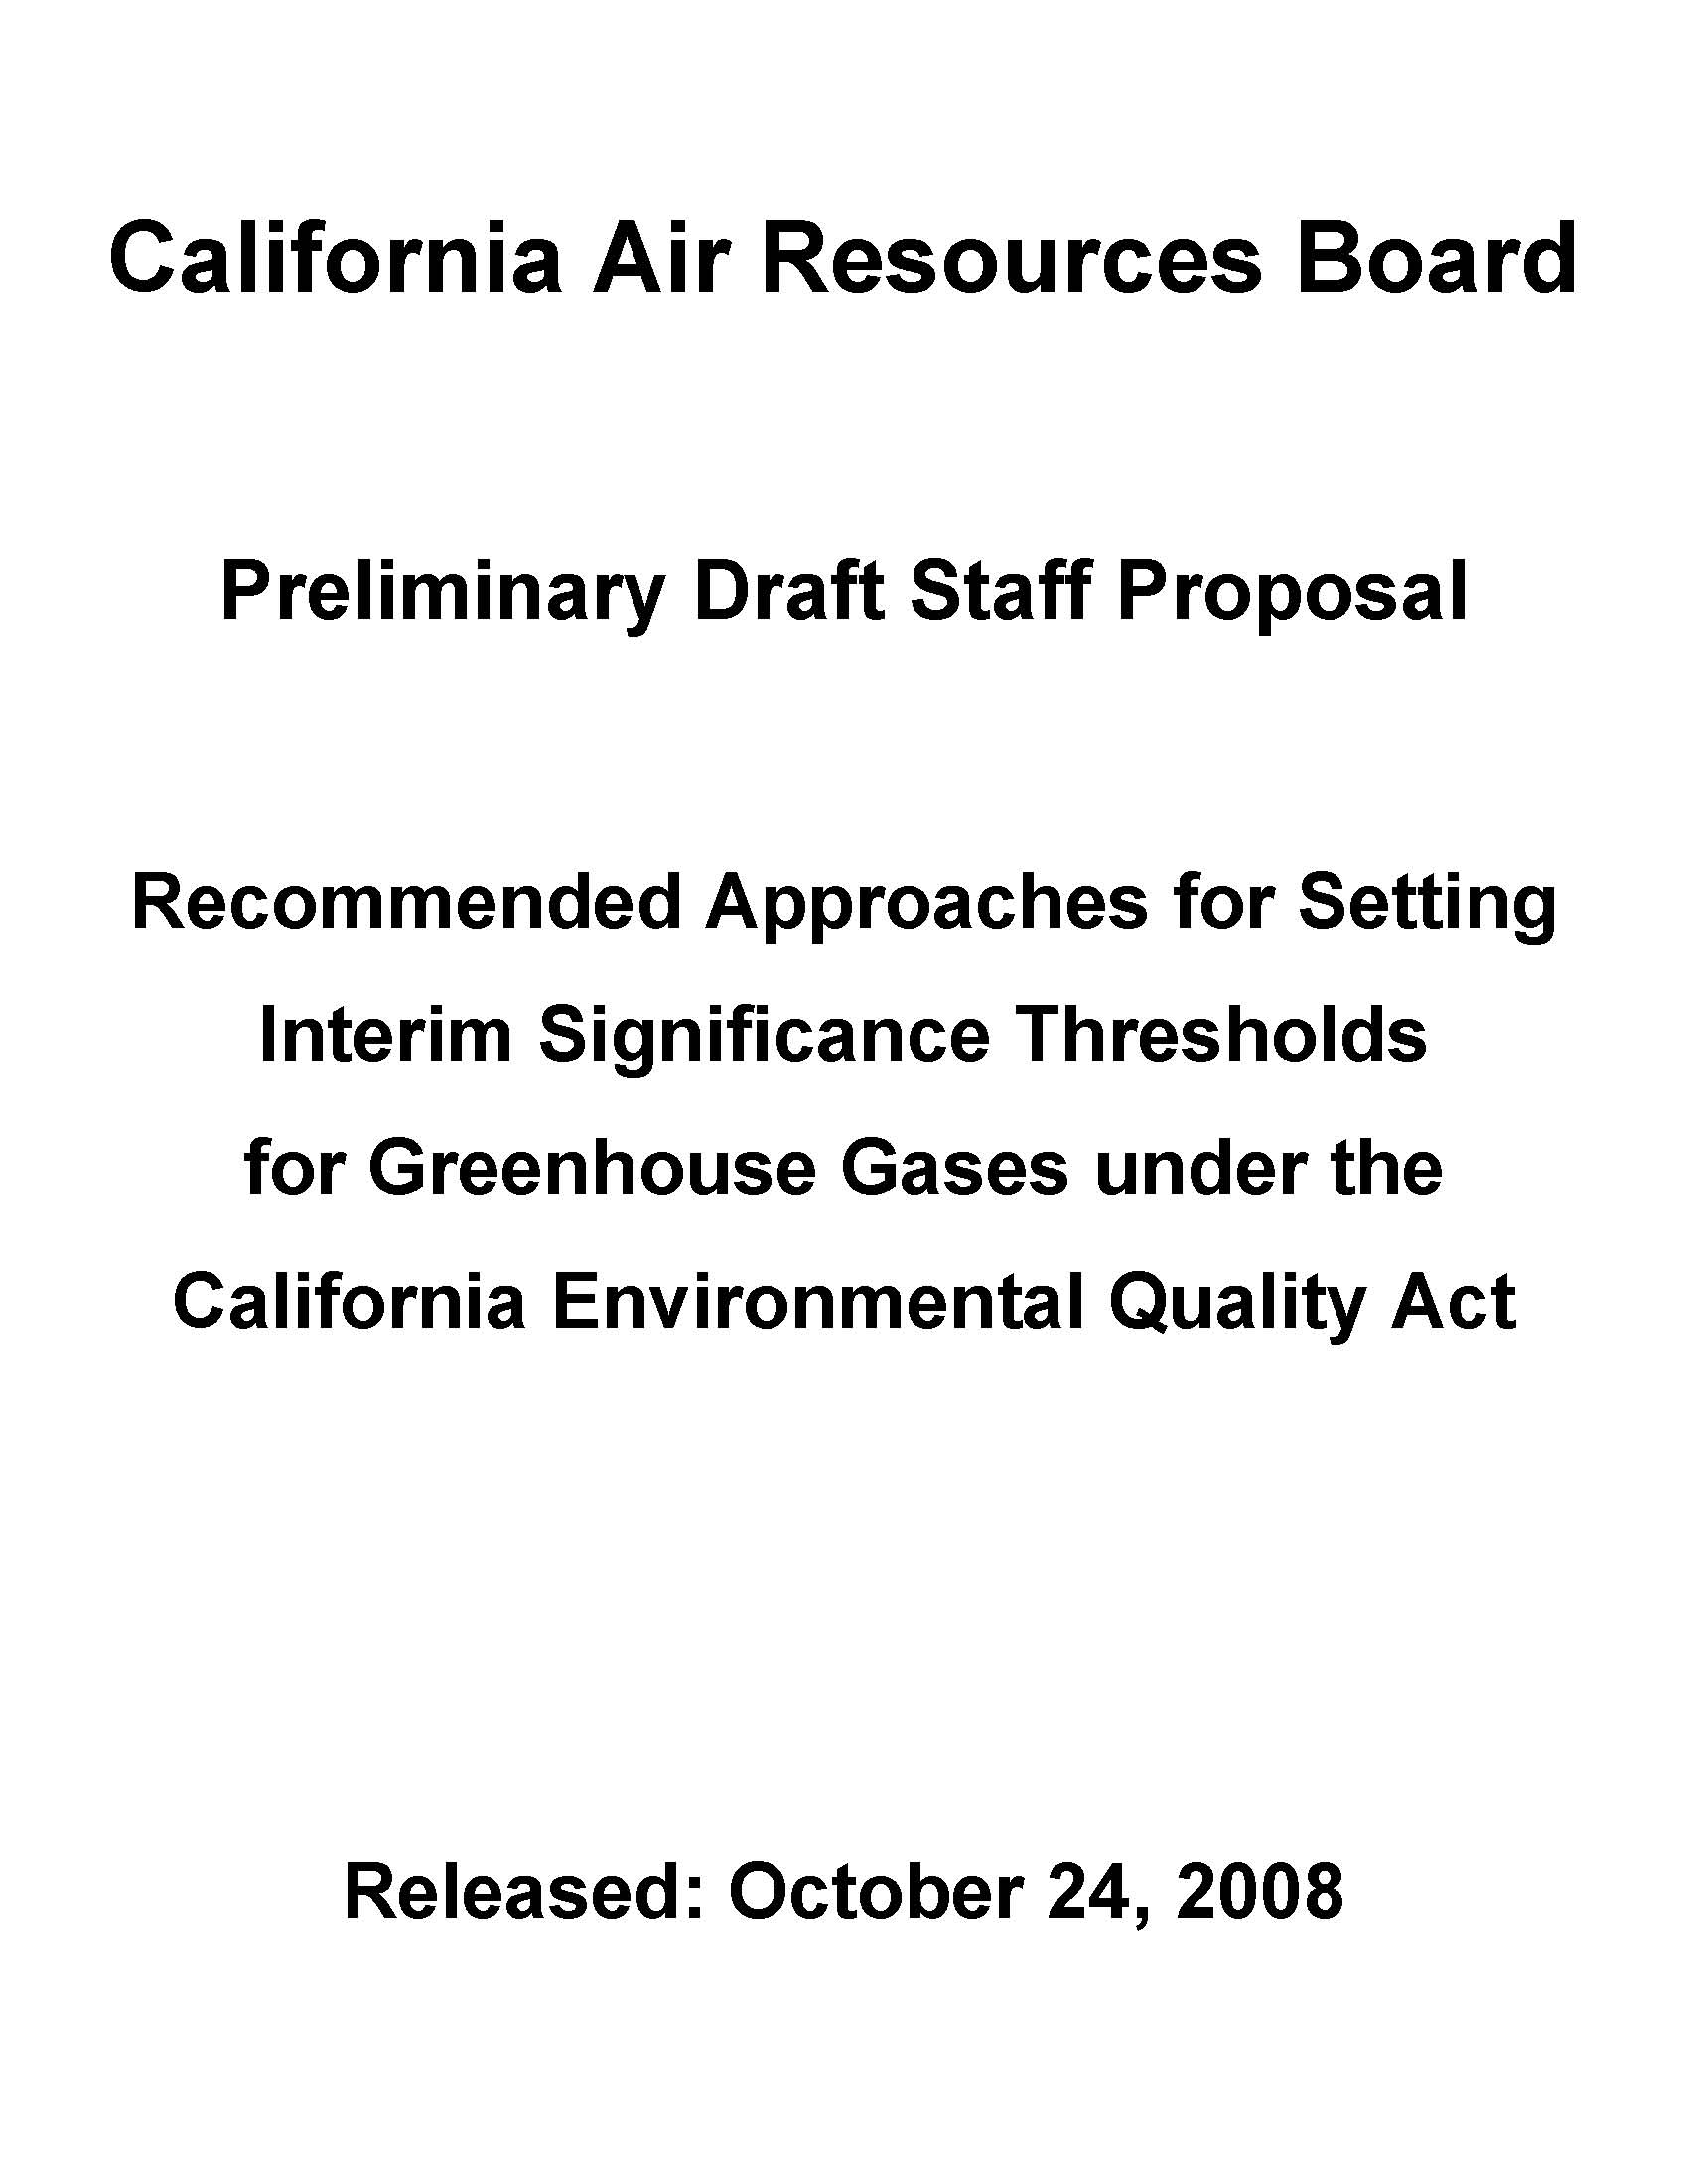 CARB Preliminary Draft Staff Proposal